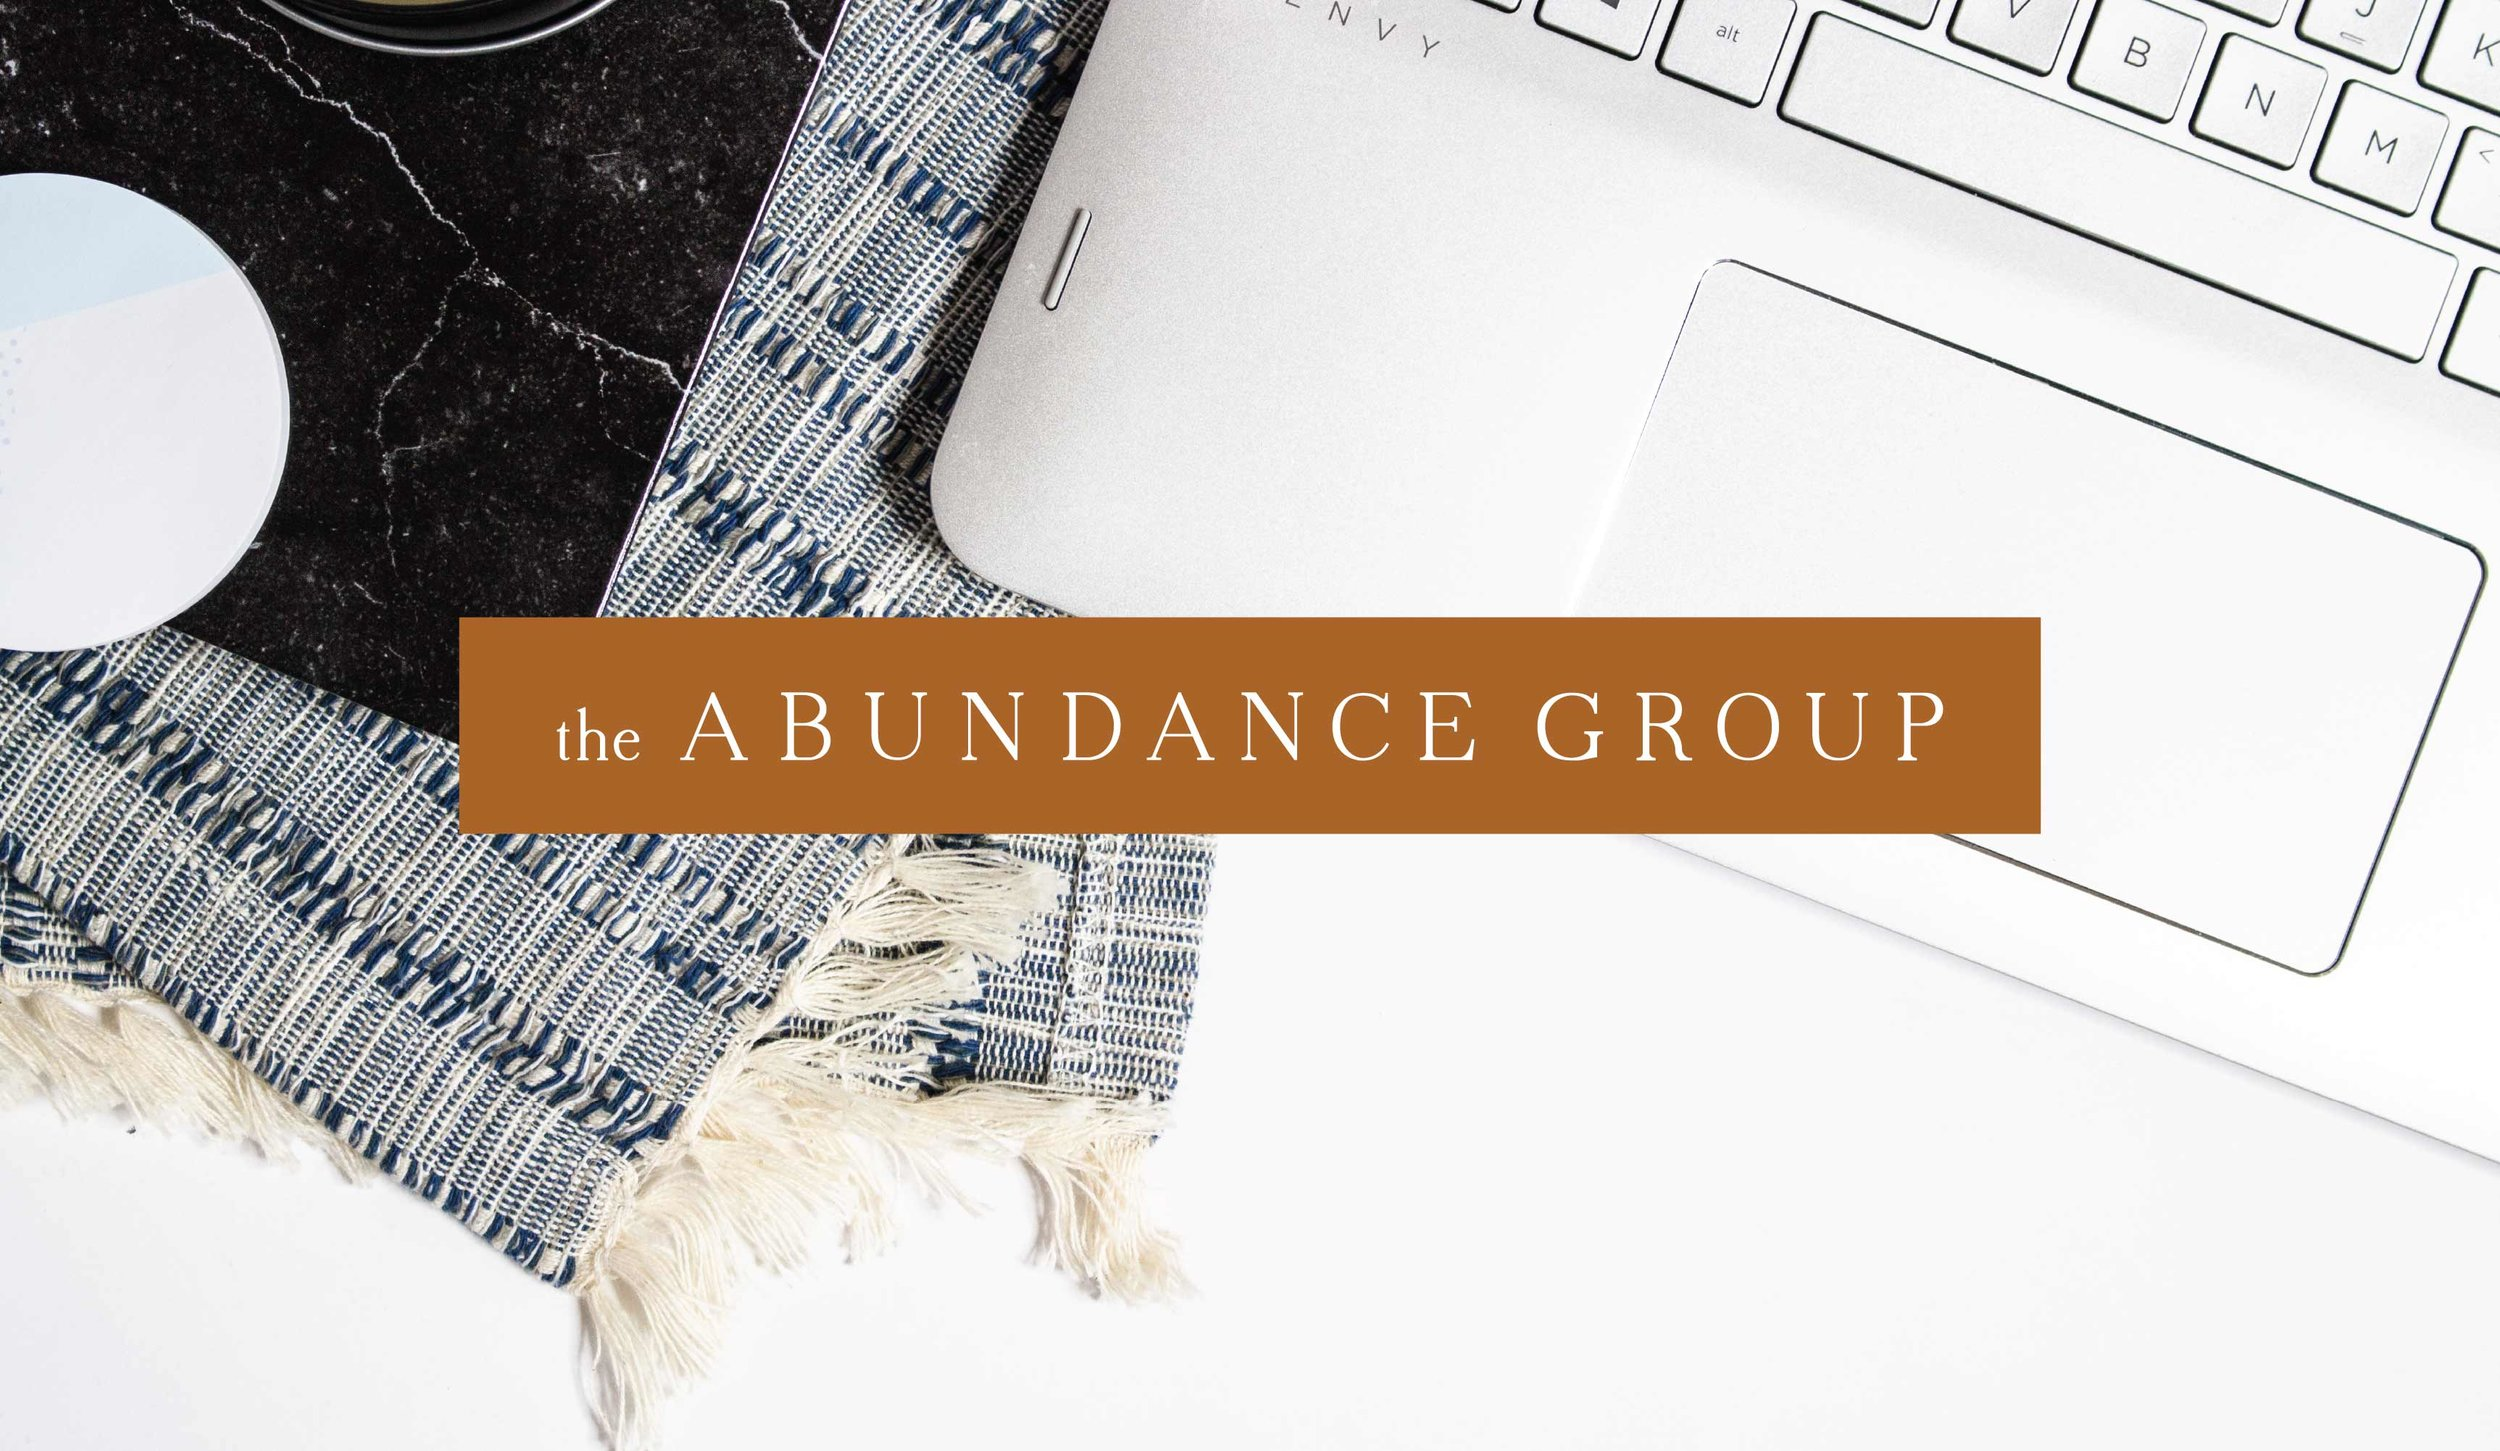 The Abundance Group Logo and Branding Design by AllieMarie Design